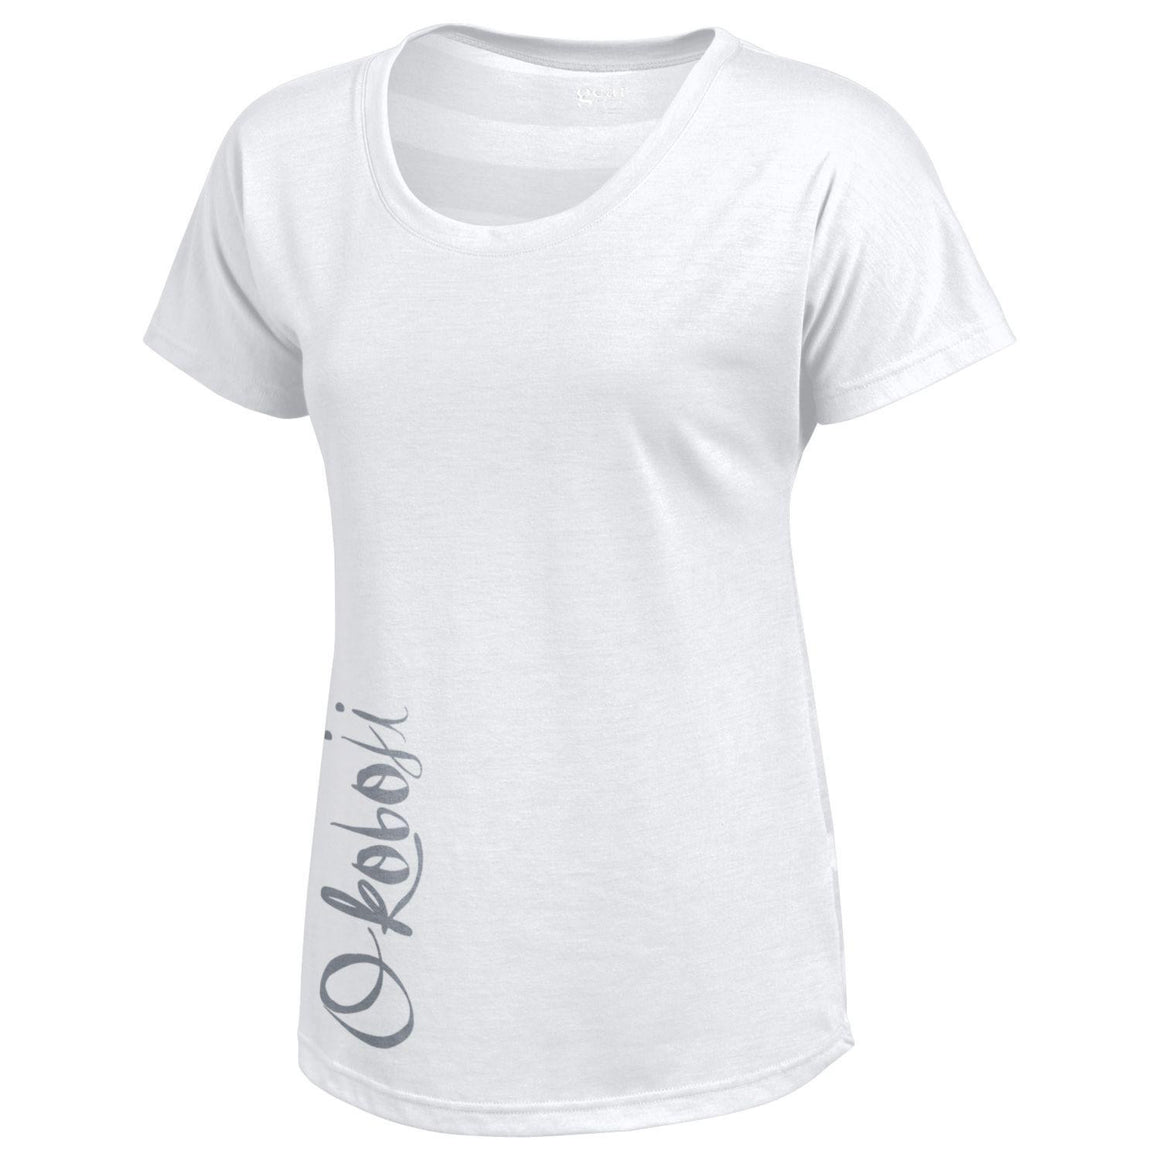 Women's White Okoboji Silver Ink Tee